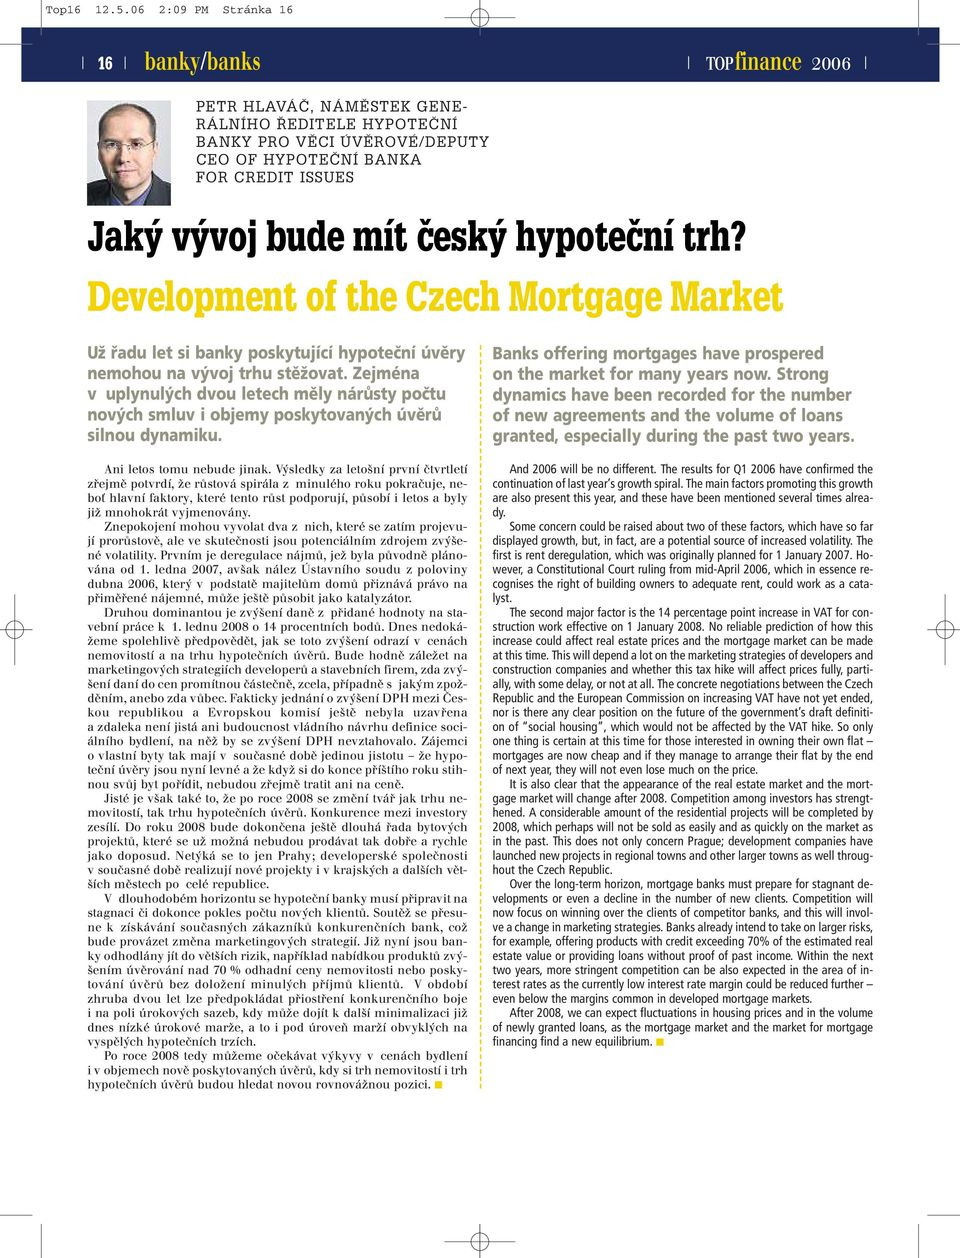 trh? Development of the Czech Mortgage Market Už řadu let si banky poskytující hypoteční úvěry nemohou na vývoj trhu stěžovat.